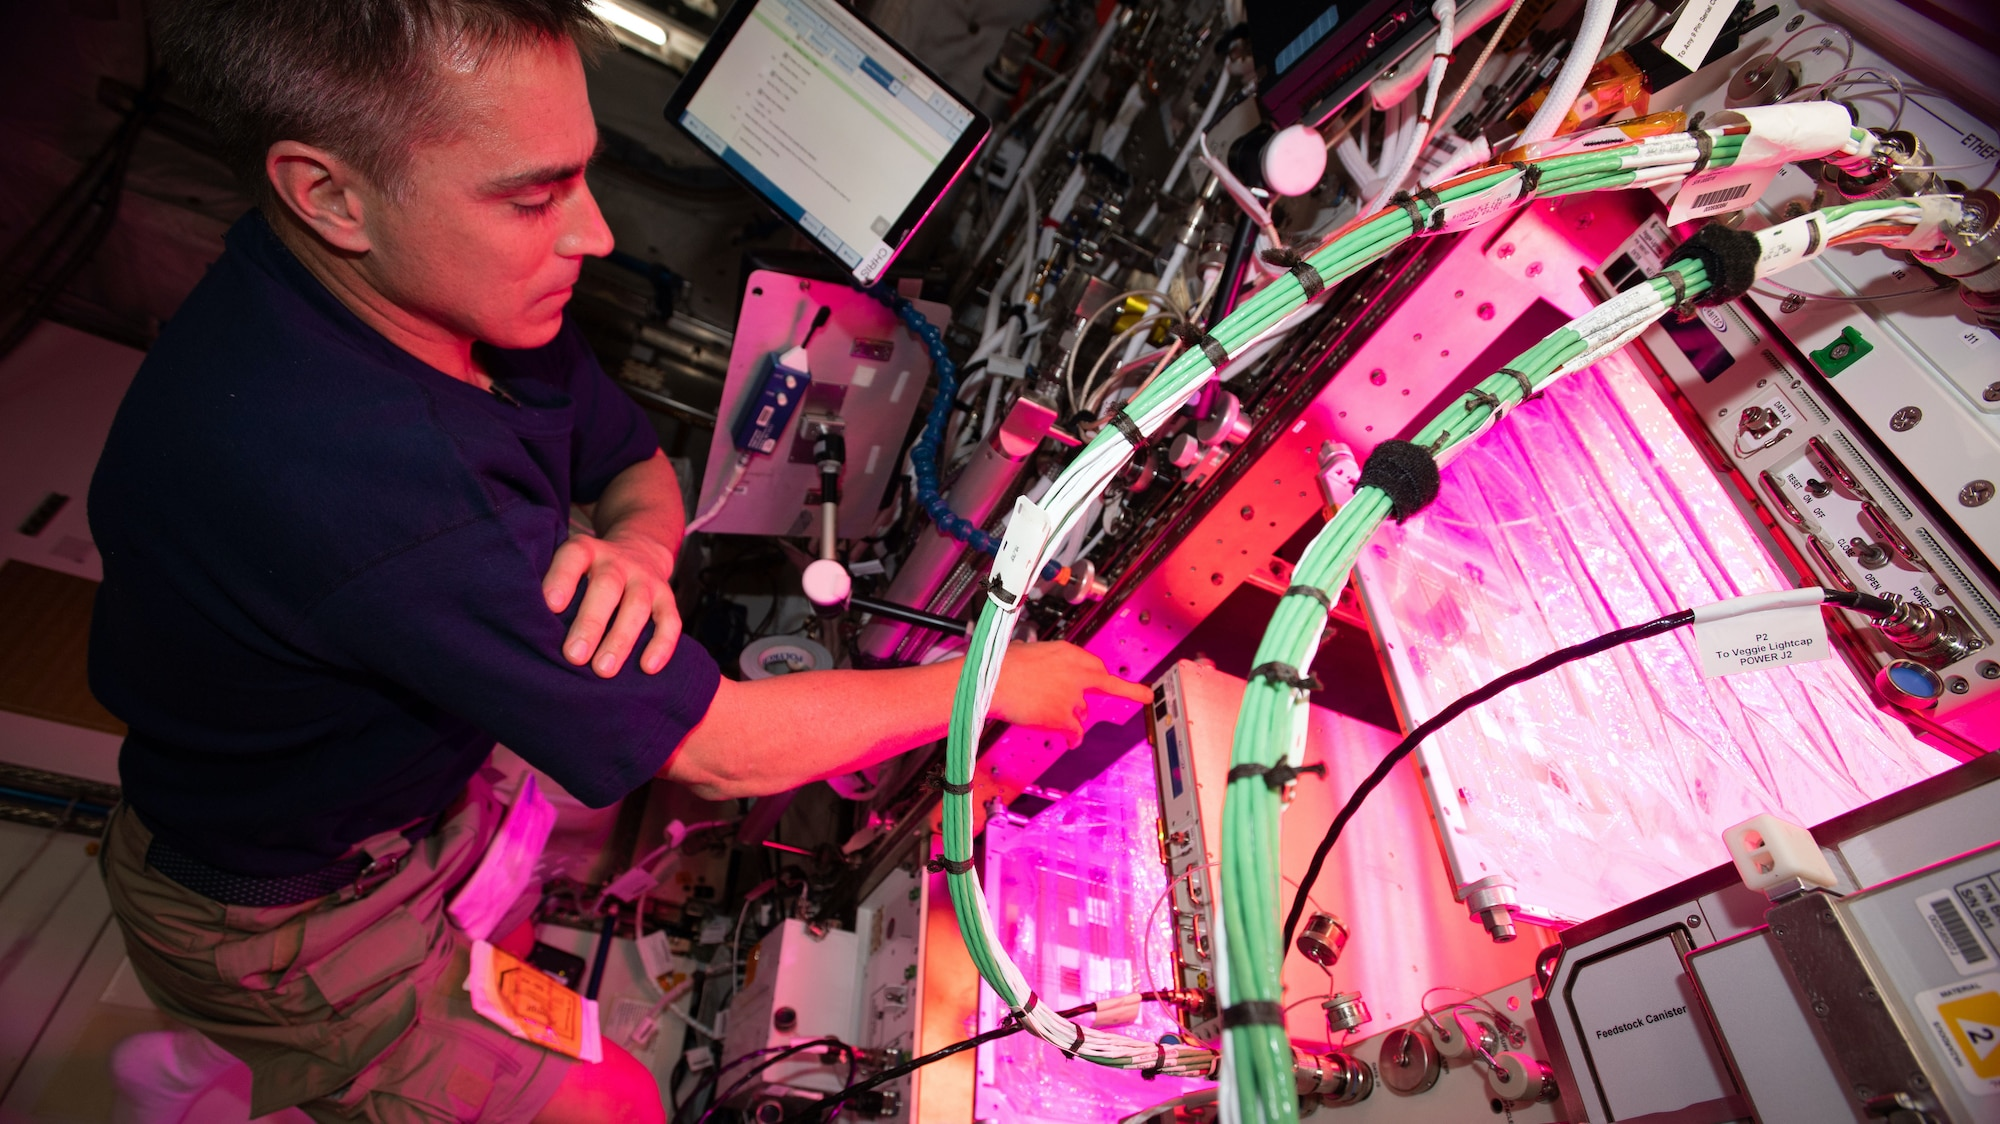 AMONG THE STARS -  (April 29, 2020) - NASA astronaut and Expedition 63 Commander Chris Cassidy cleans botany research hardware after growing lettuce and mizuna greens inside the Columbus laboratory module. The Veggie PONDS (passive orbital nutrient delivery system) research facility seeks to demonstrate growing vegetables in space to support future crews on long-term missions. (NASA) CHRIS CASSIDY